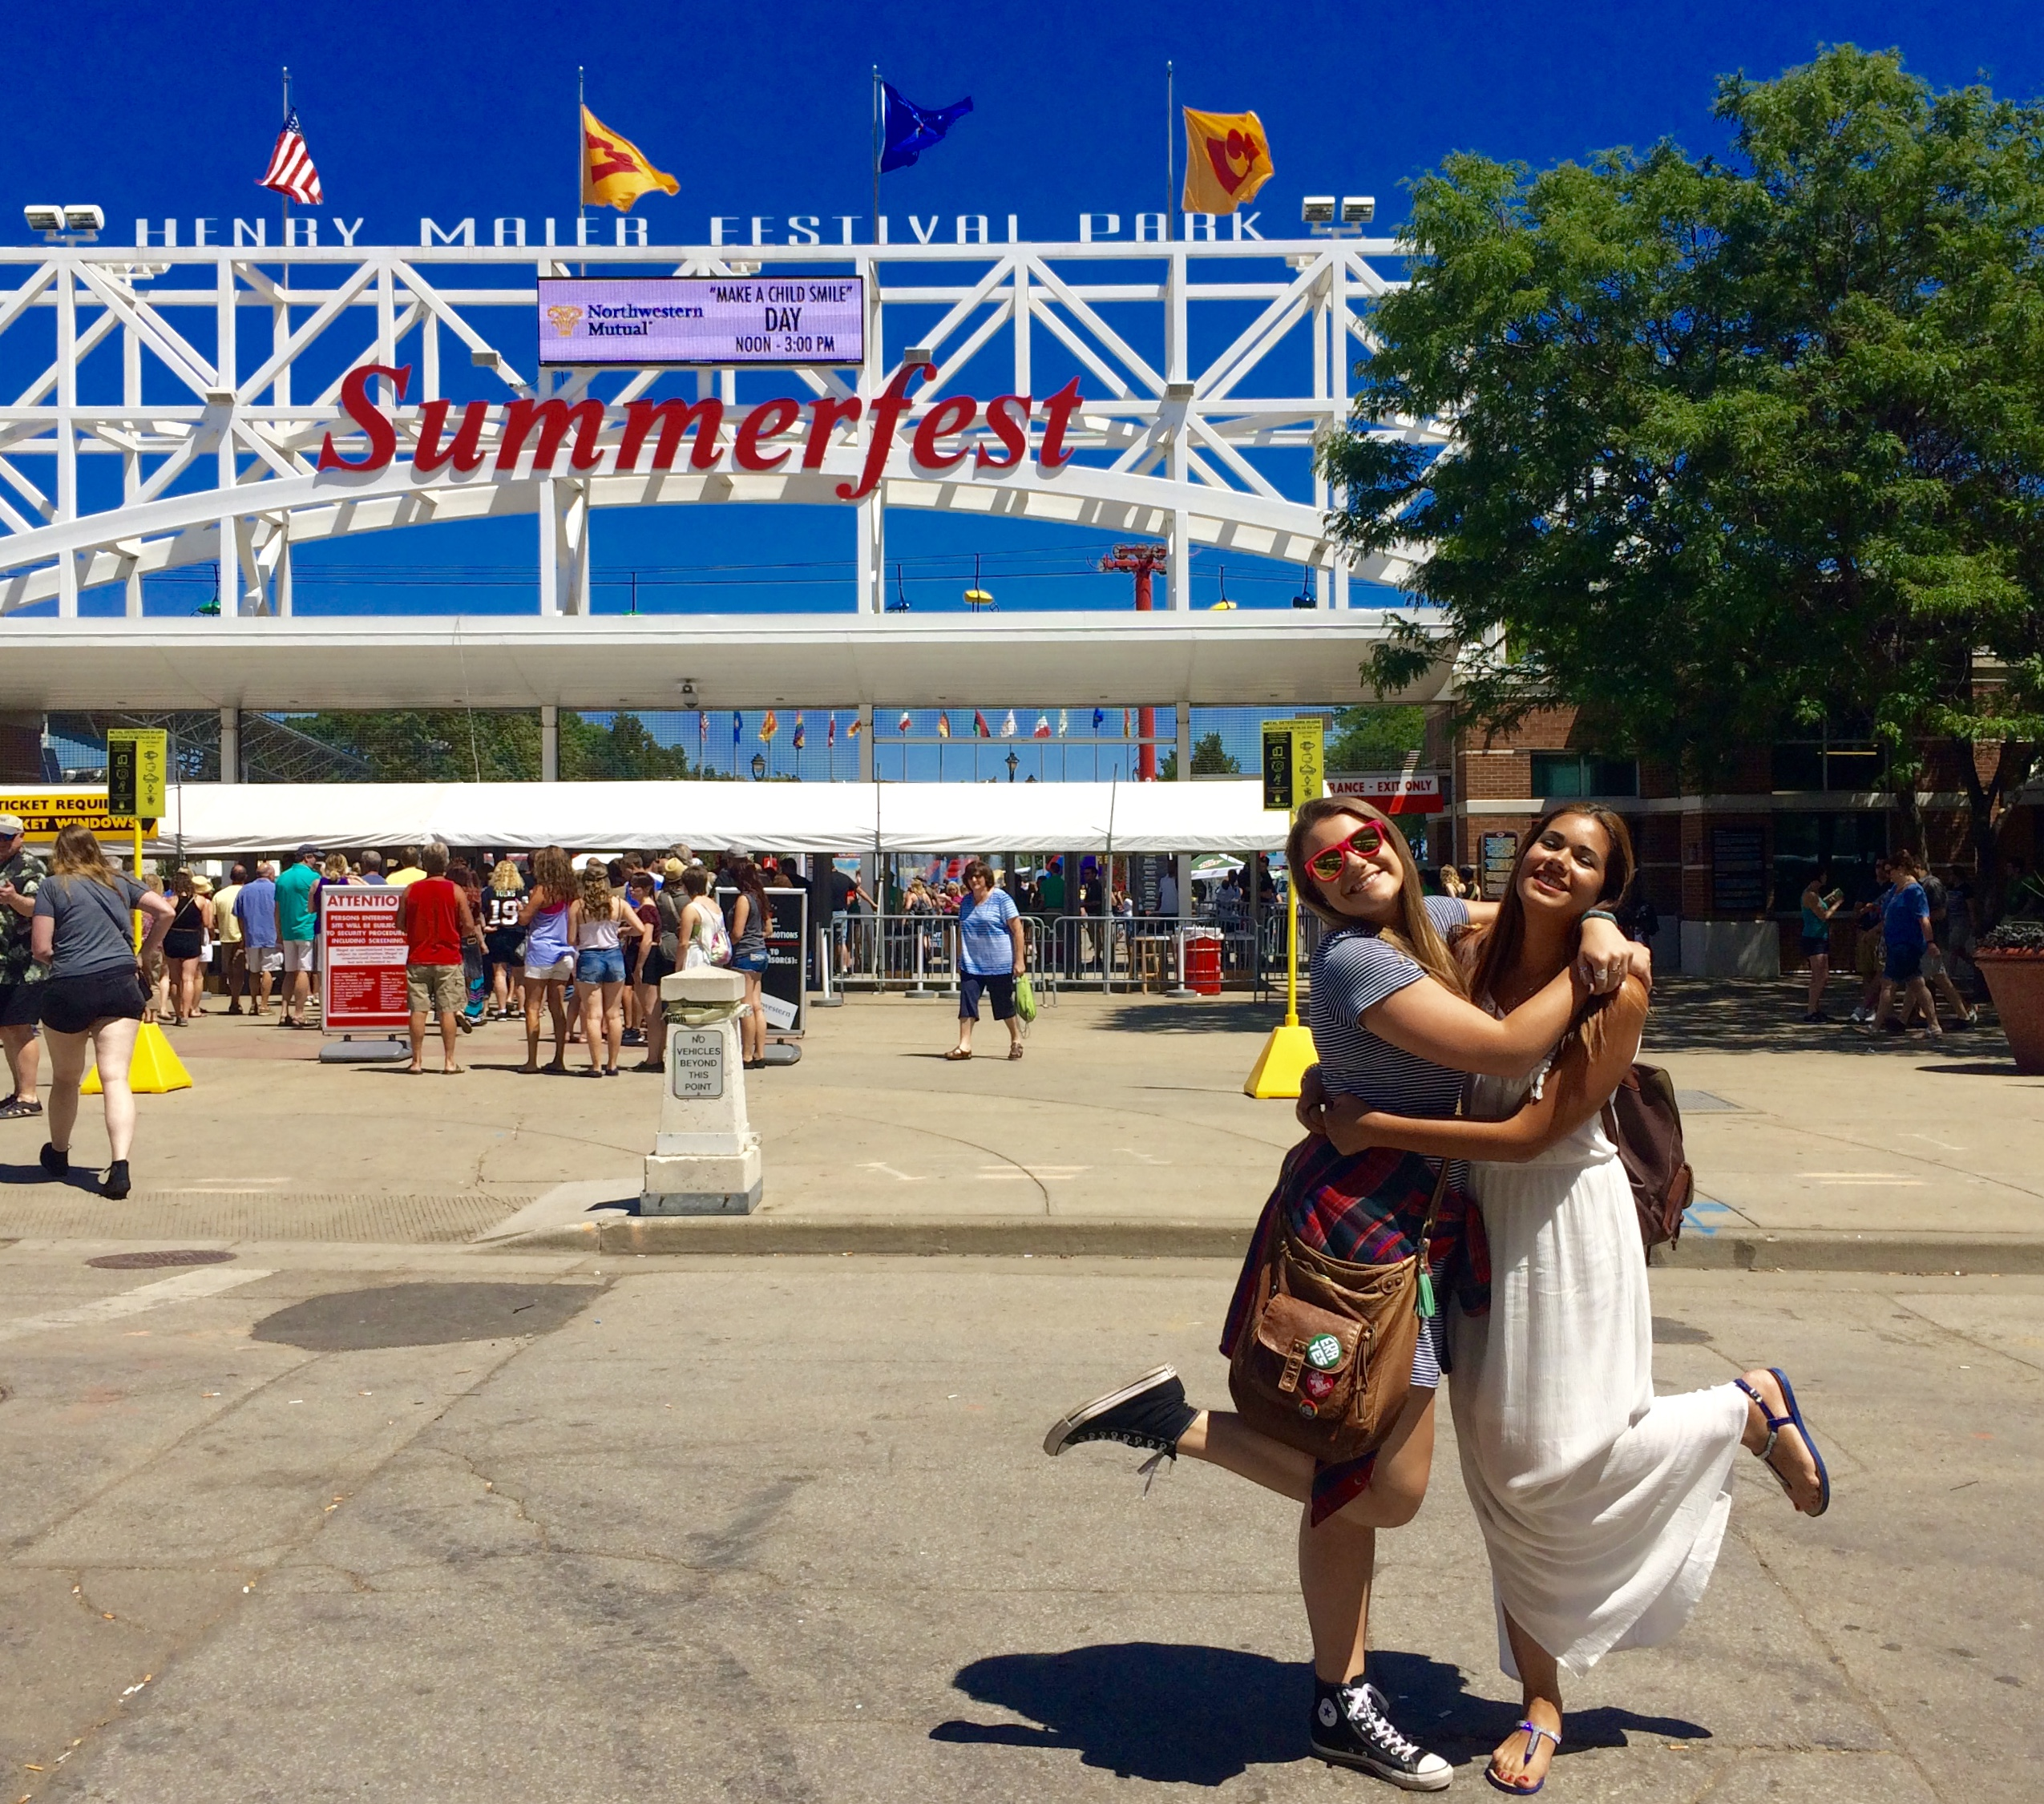 Summerfest in Milwaukee, WI was unlike anything she had ever seen